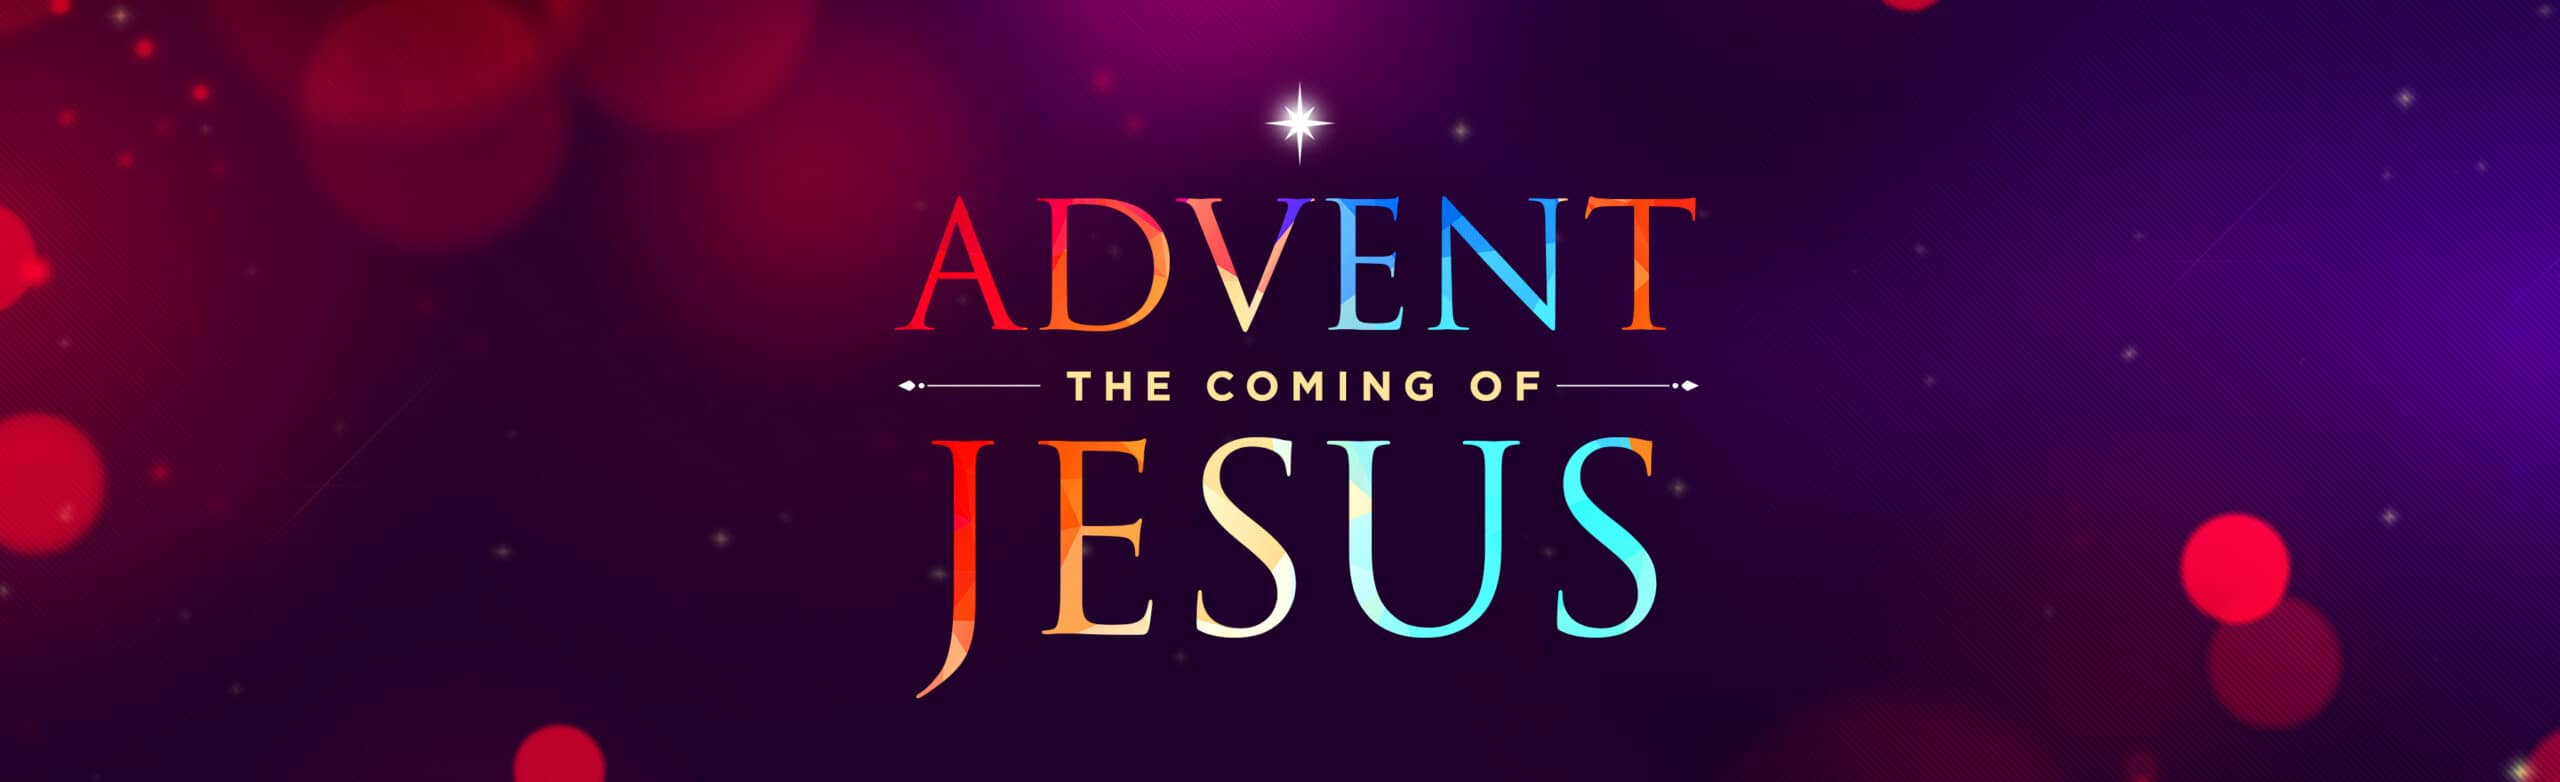 Advent The Coming of Jesus Slider 3600x1100